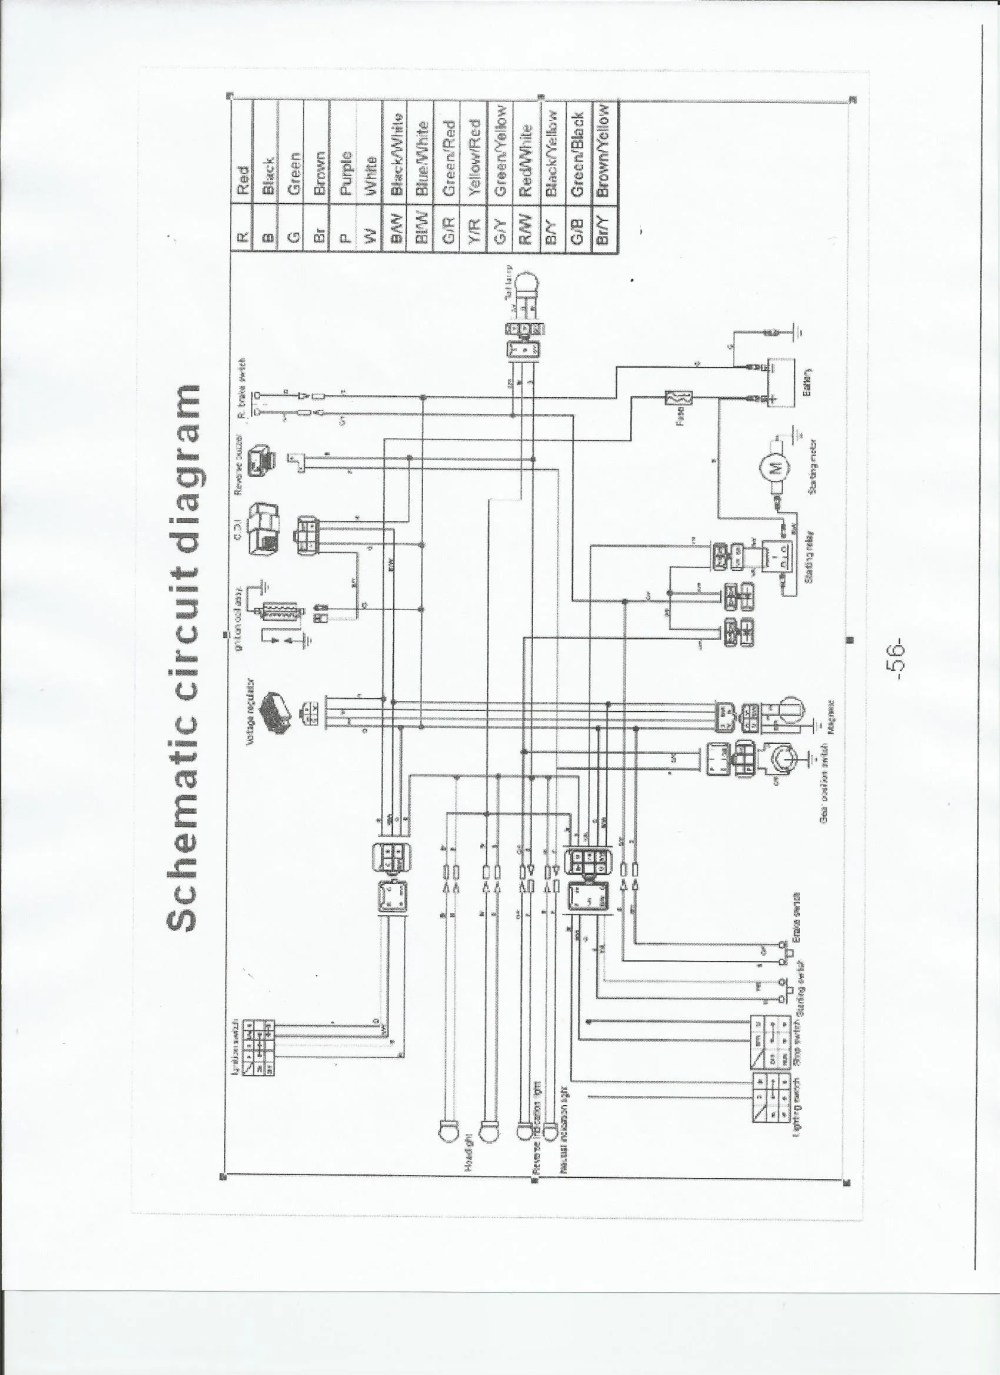 medium resolution of simple wiring diagram kazuma schematic diagram datasimple wiring diagram kazuma diagram data schema kazuma 50cc atv